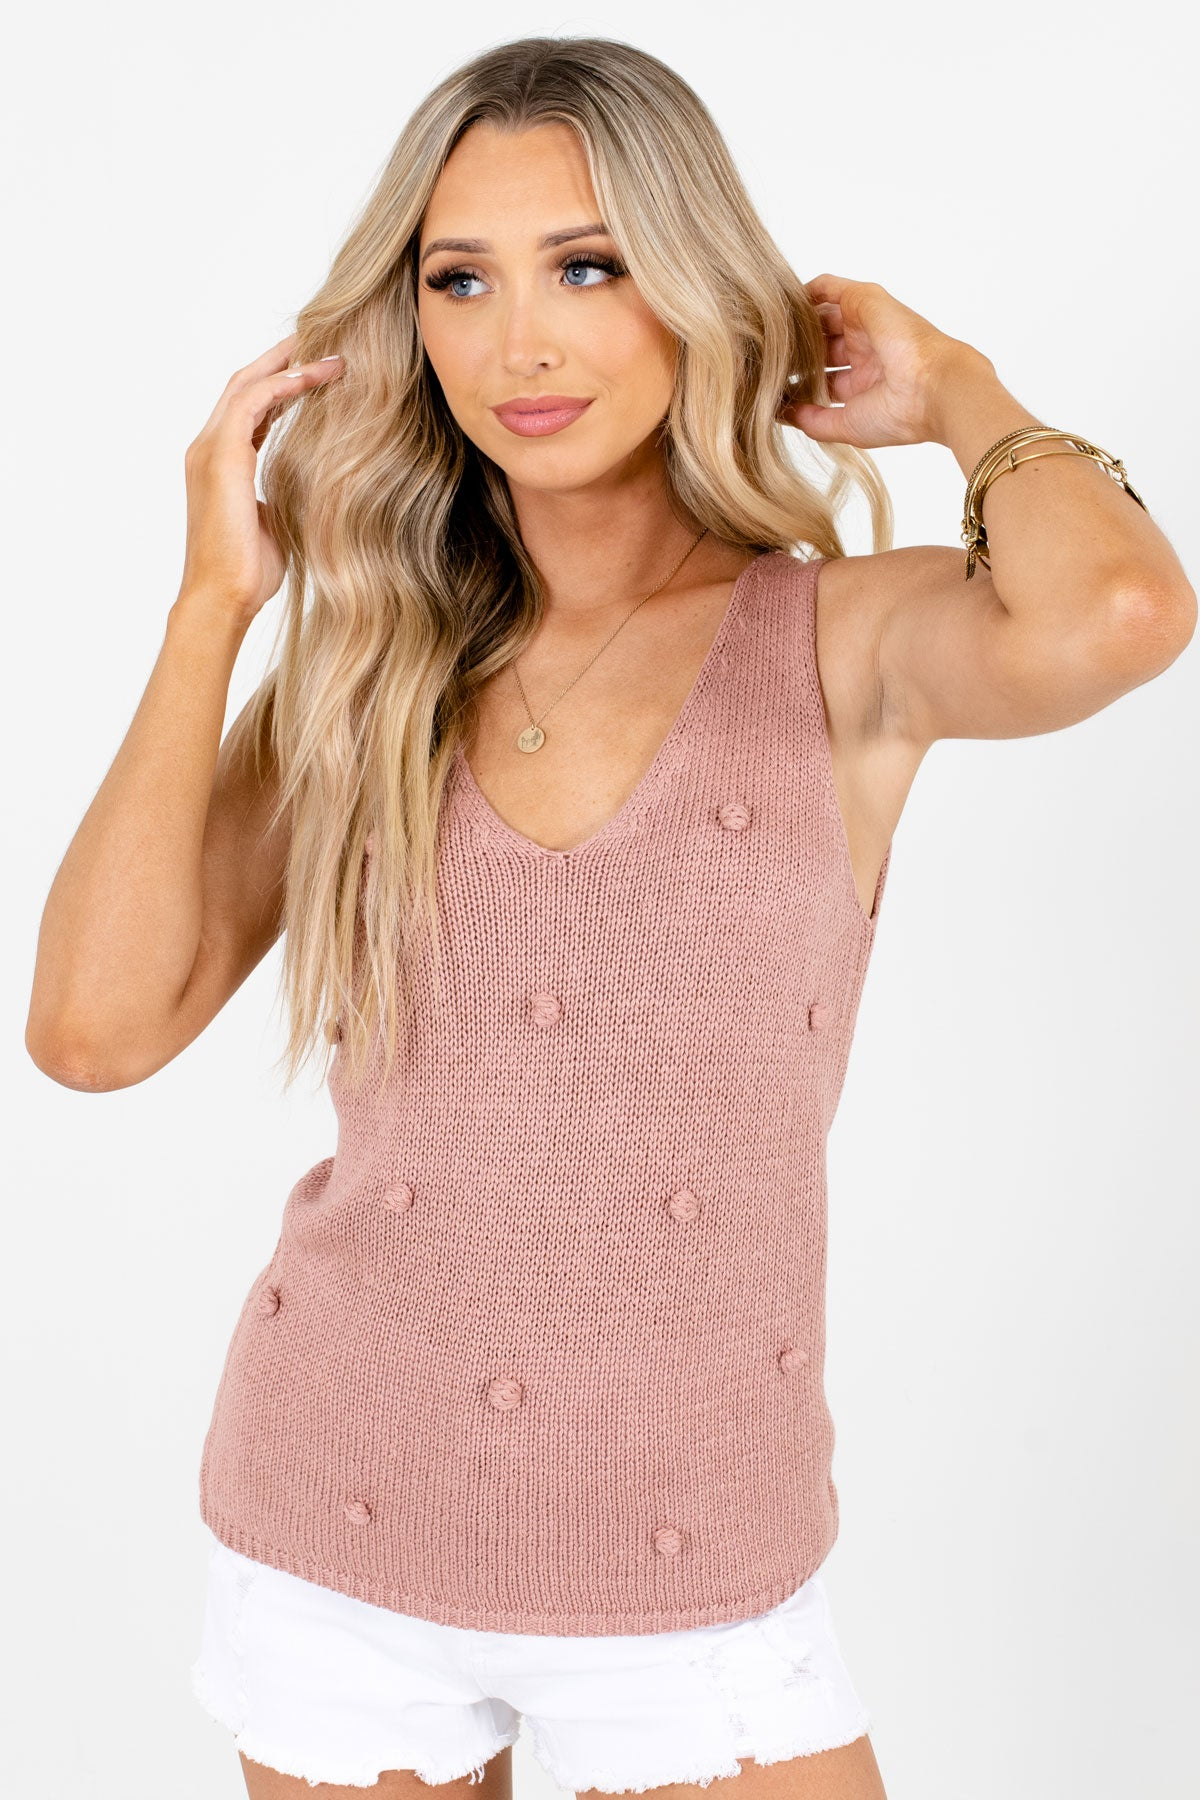 Pink Polka Dot Textured Boutique Tank Tops for Women